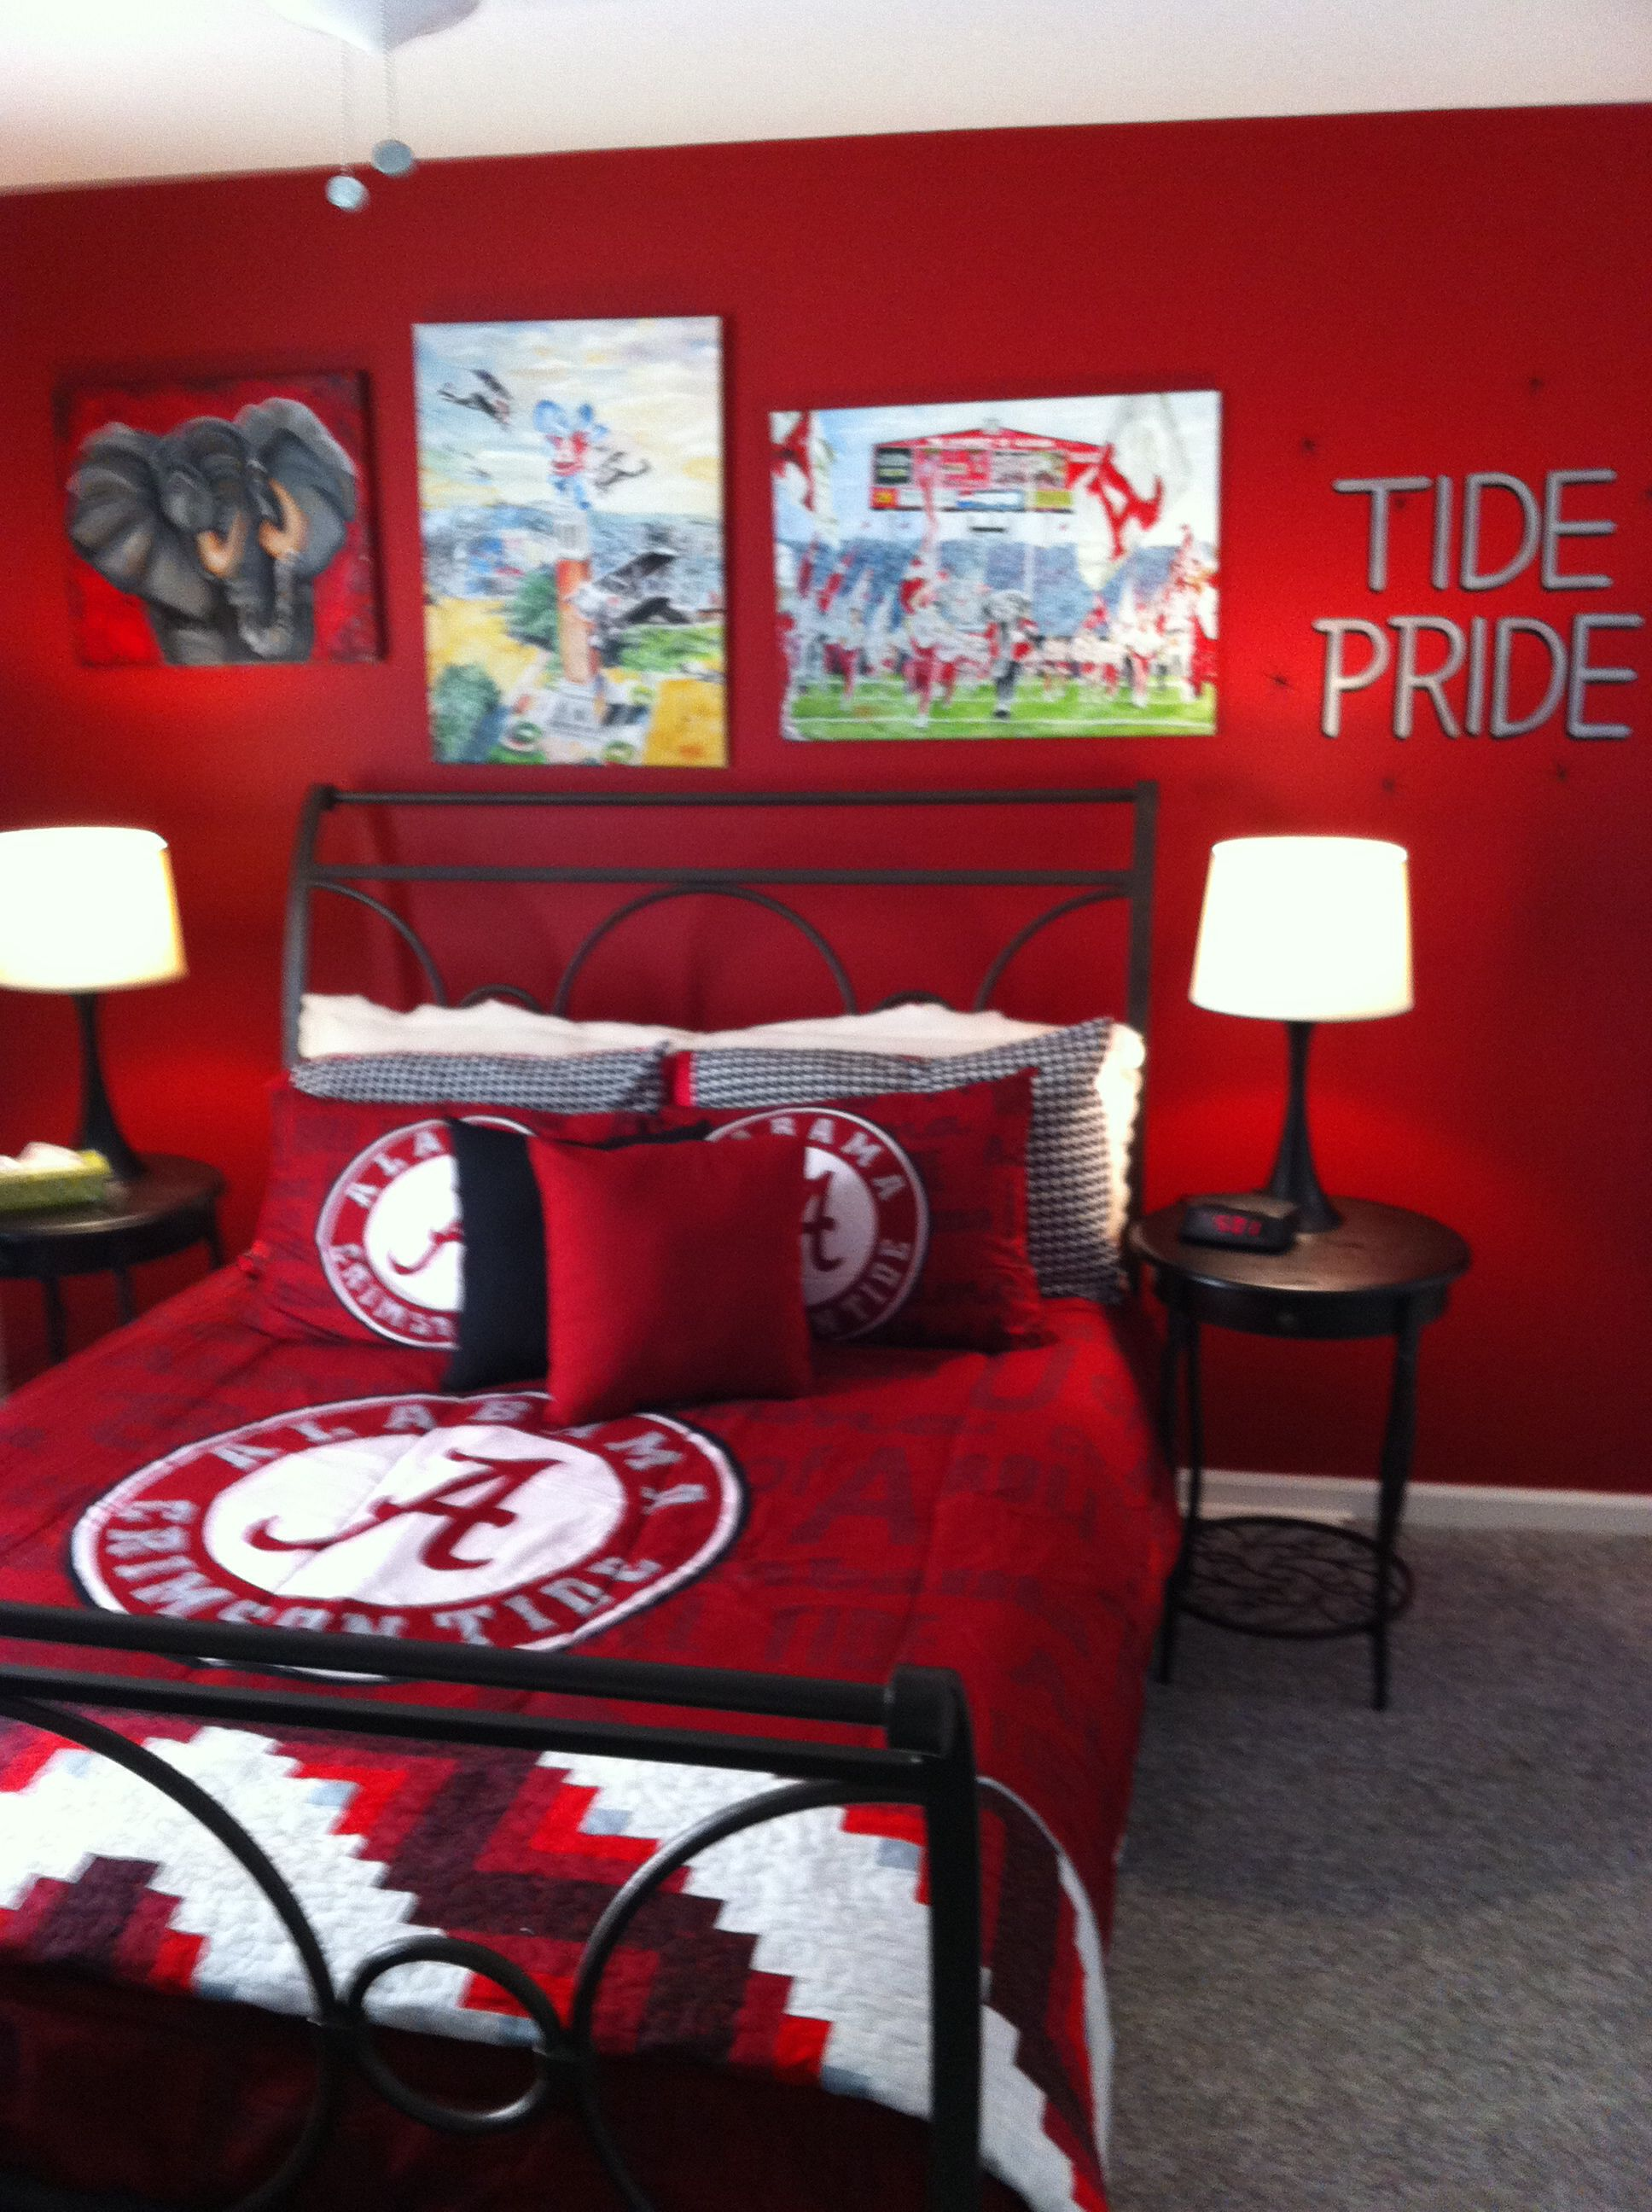 Groovy Alabama Bedroom Rolltidewareagle Com Sports Stories That Home Interior And Landscaping Synyenasavecom